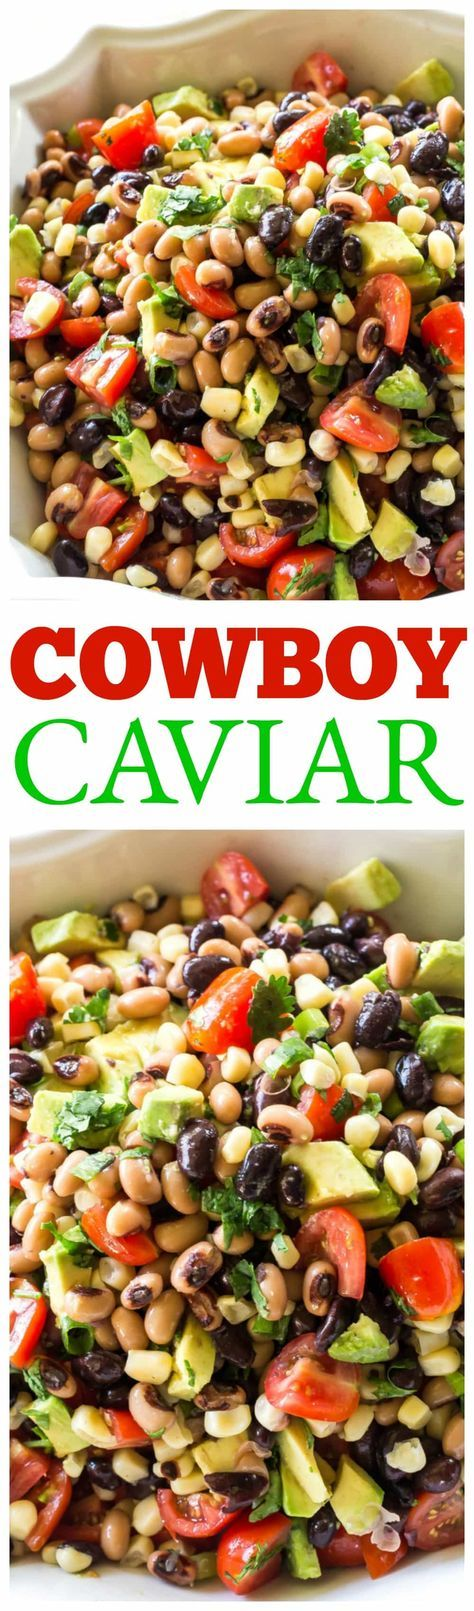 This Cowboy Caviar is one of my favorite recipes to bring to a potluck or BBQ. Beans, avocado, tomatoes, and corn tossed in a light dressing. Eat with chips or just a fork! the-girl-who-ate-everything.com